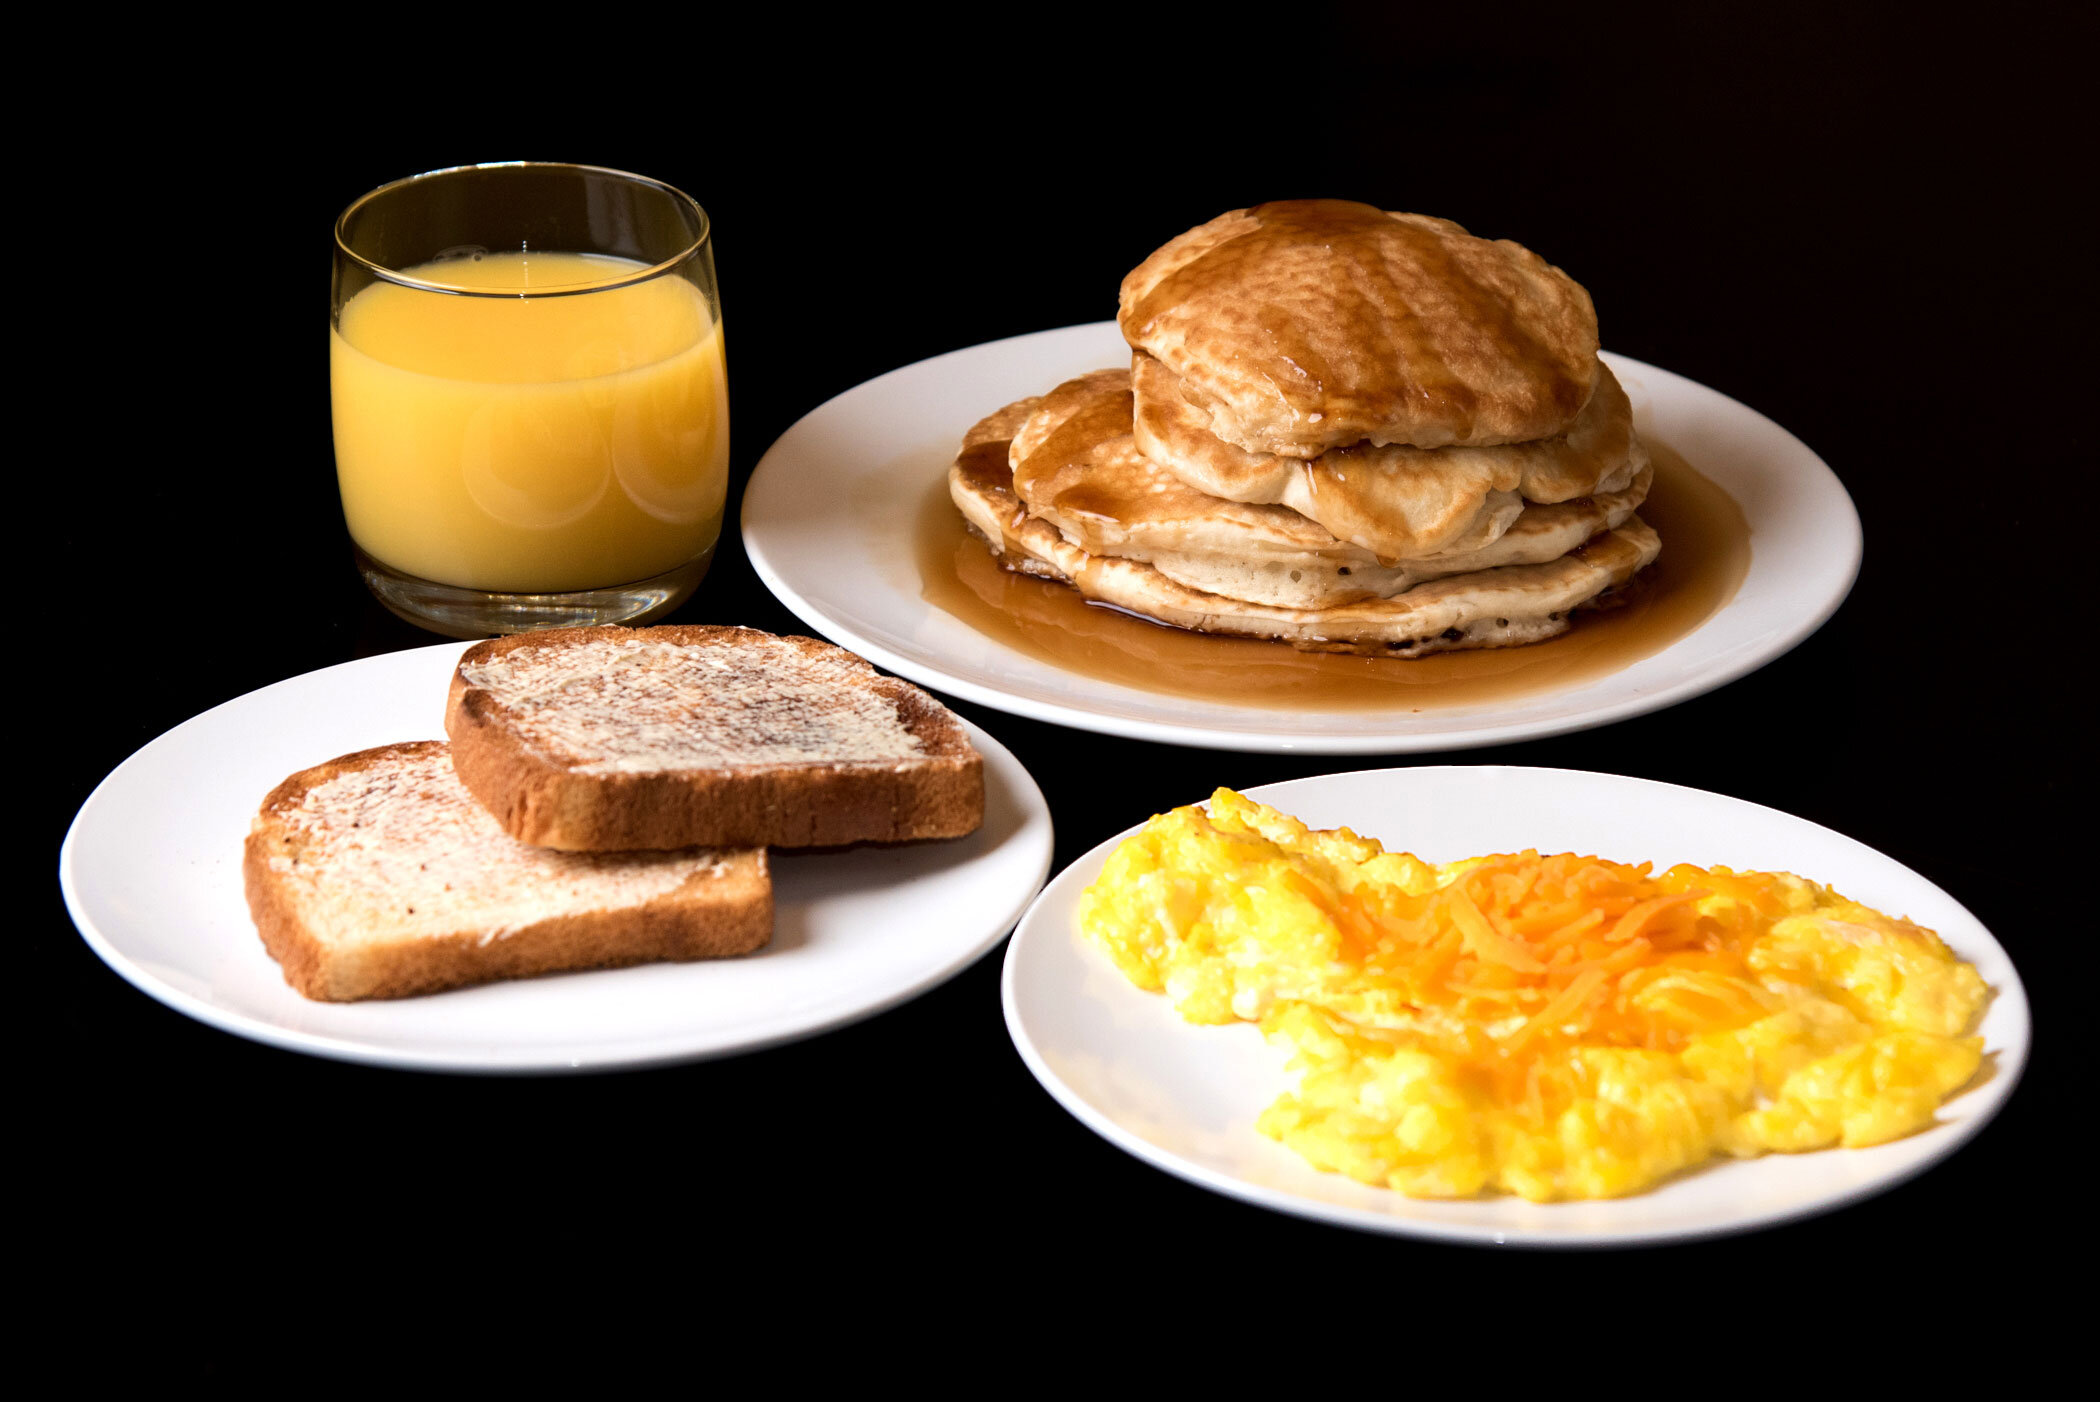 """""""No barking from the dog, no smog, And Momma cooked a breakfast with no hog"""" - Ice Cube, """"It Was A Good Day"""""""